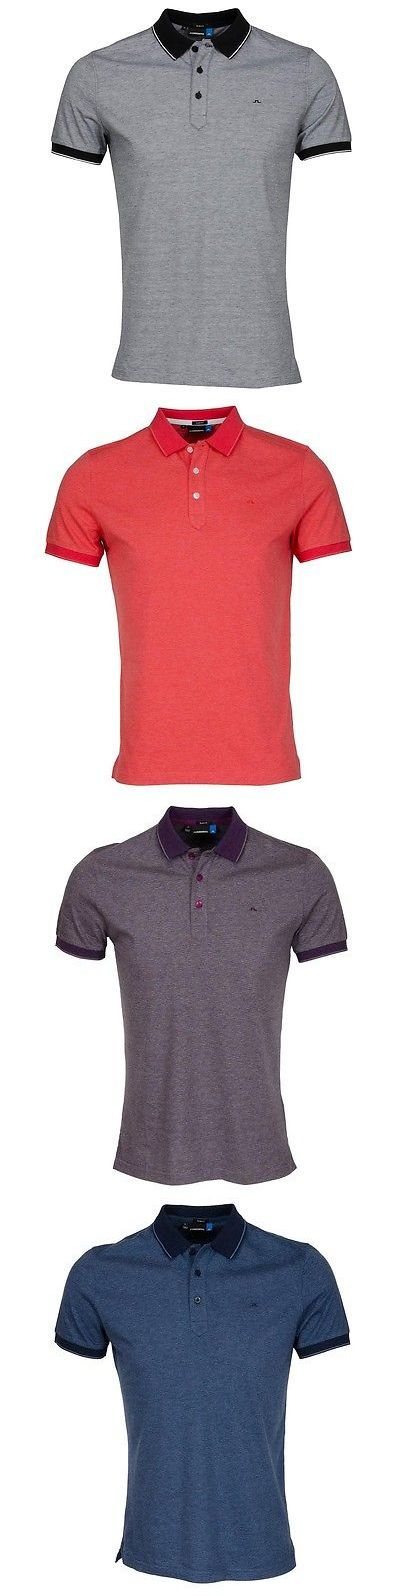 Shirts Tops and Sweaters 181138: J.Lindeberg Regis Lux Stripe Jersey Mens Golf Polo-Slim Fit–Multiple Colors-New -> BUY IT NOW ONLY: $59.99 on eBay!